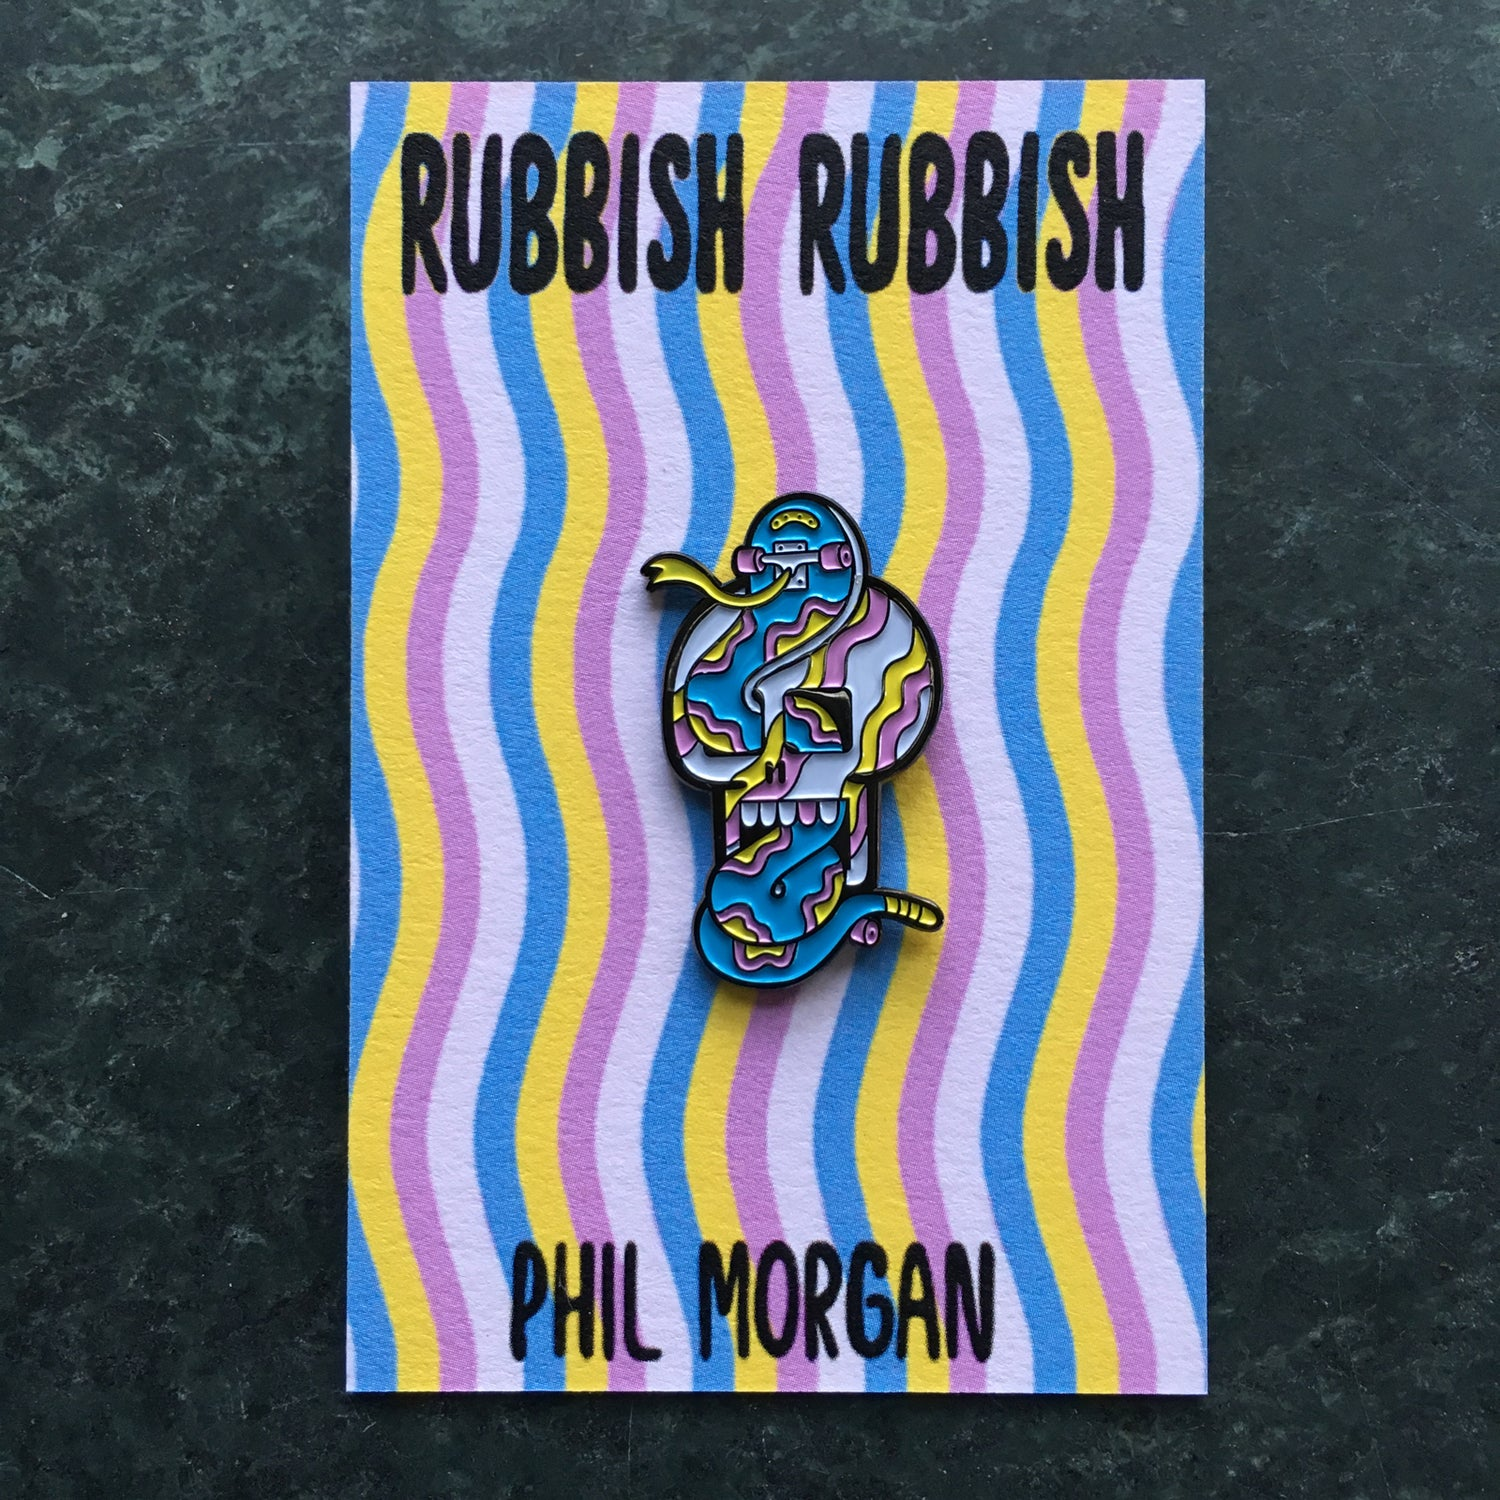 Image of Rubbish Rubbish 28 Phil Morgan